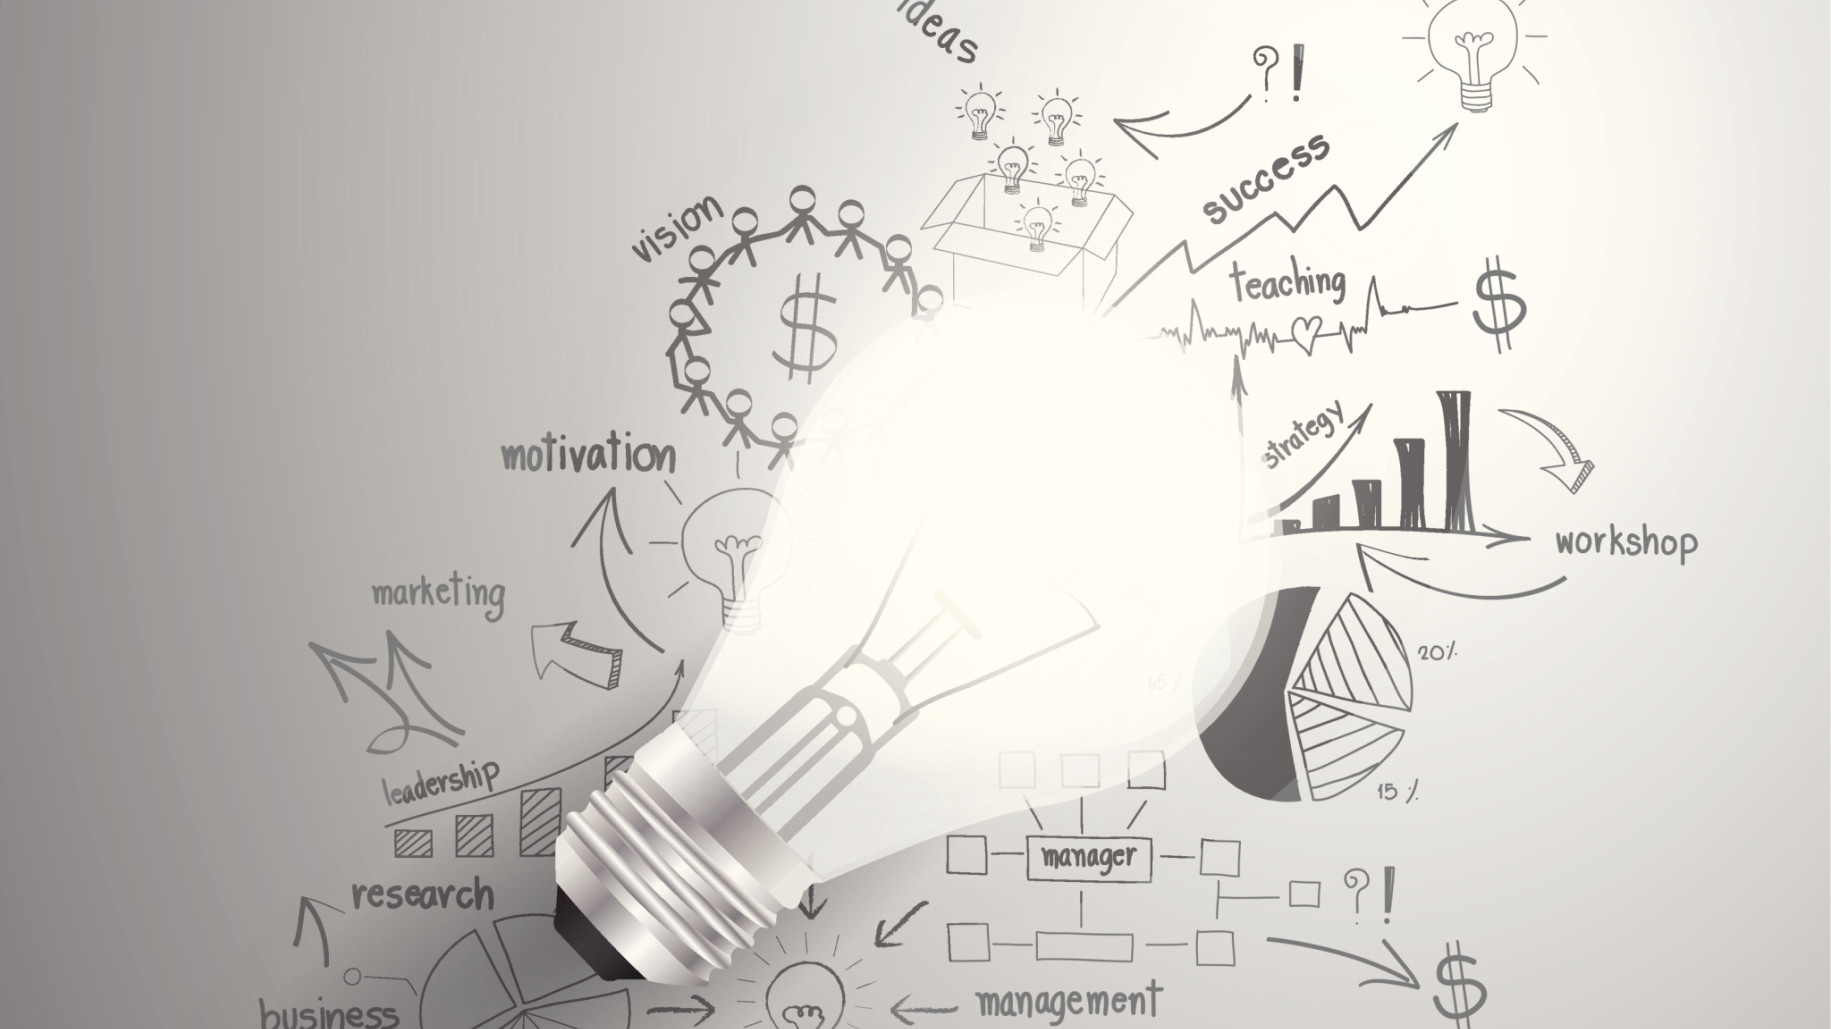 Bright ideas to help build a stronger startup